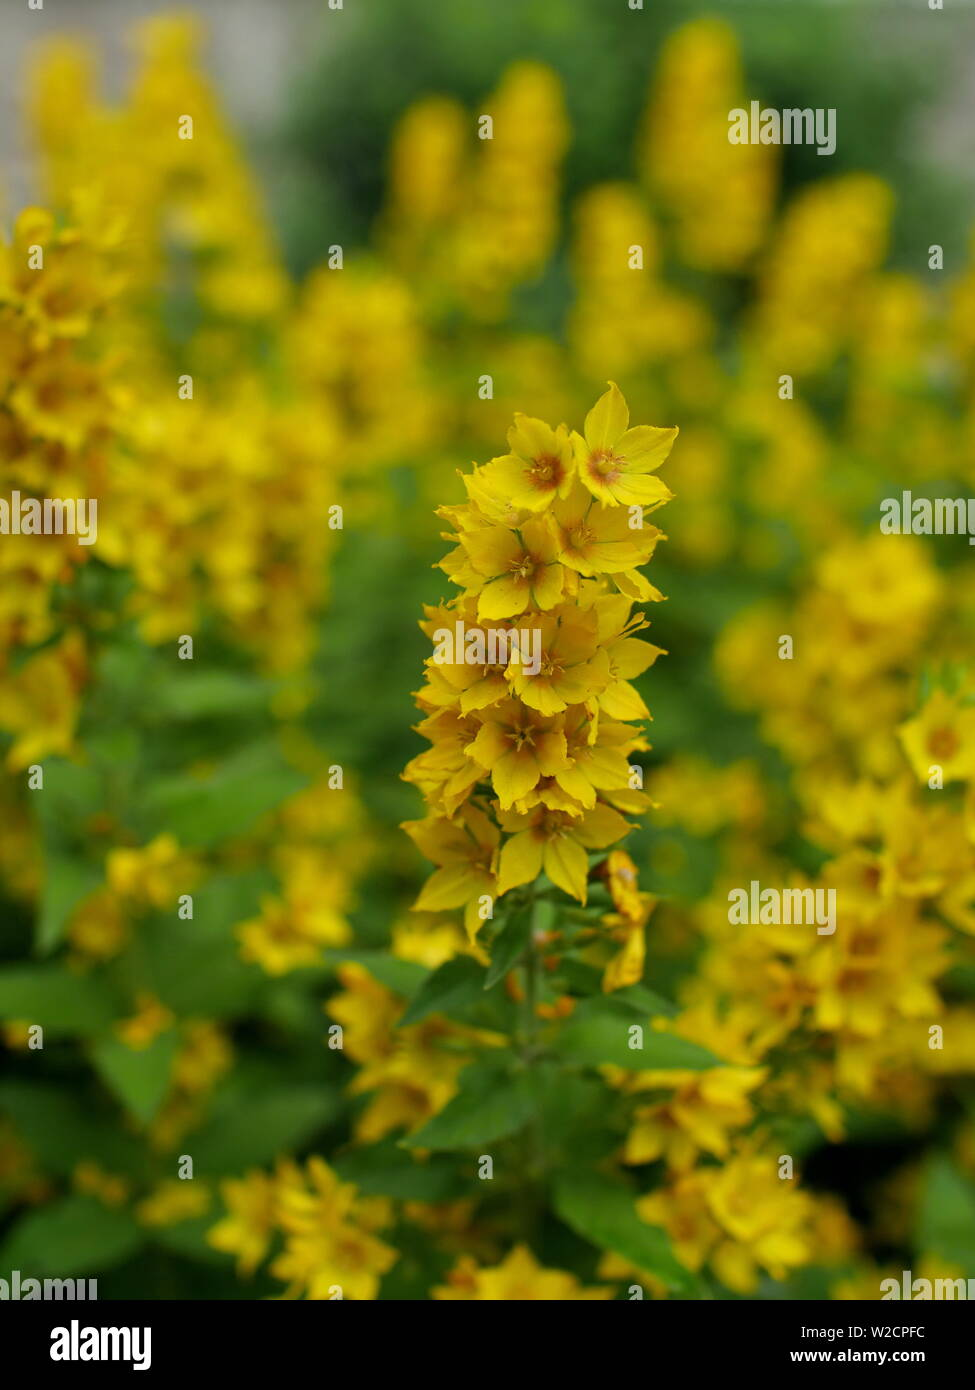 flowers loosestrife bright yellow inflorescences and lush green foliage Stock Photo